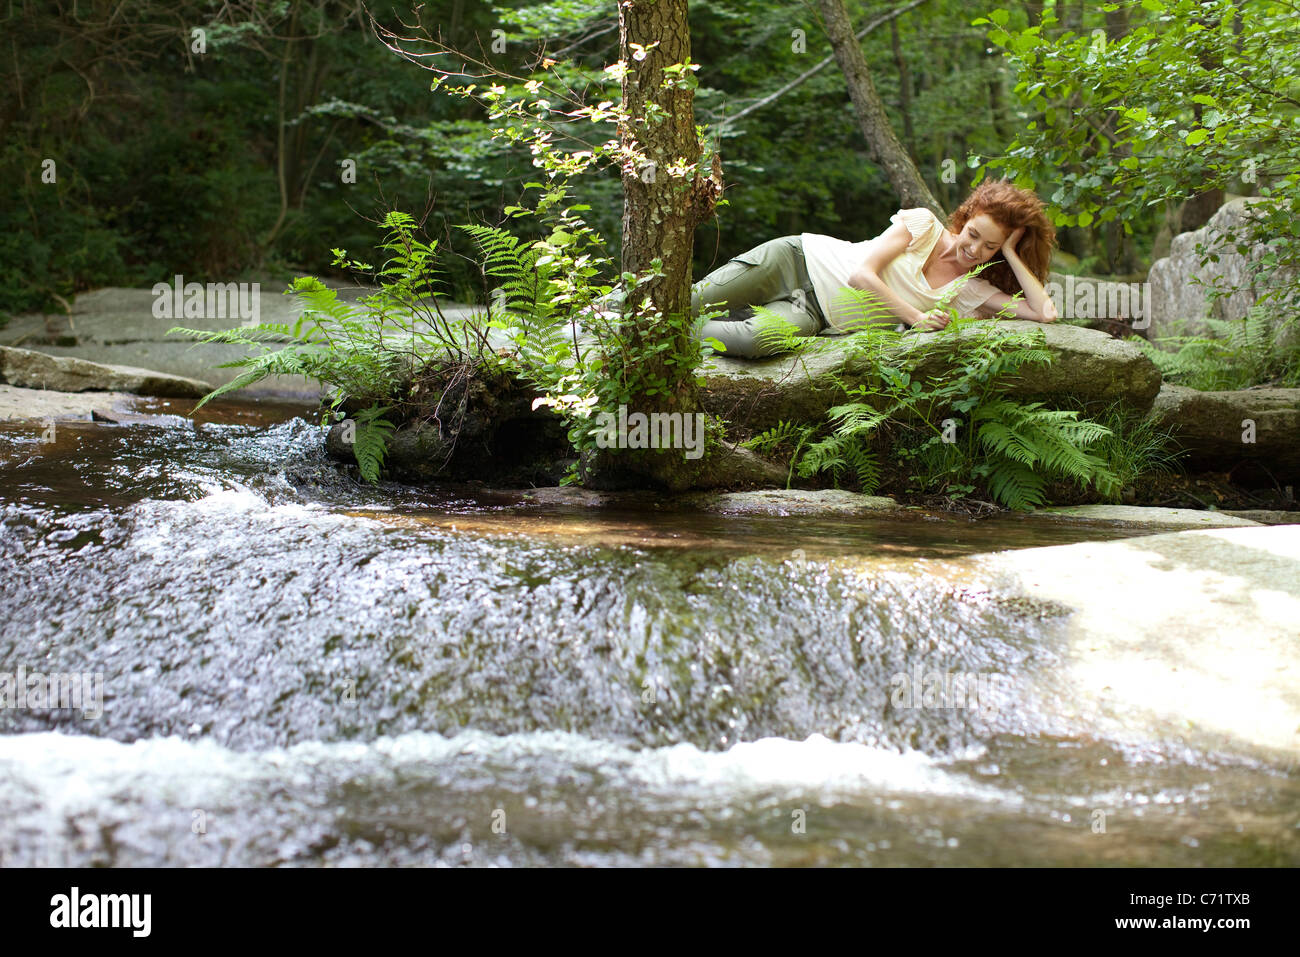 Young woman relaxing on rock by flowing stream - Stock Image